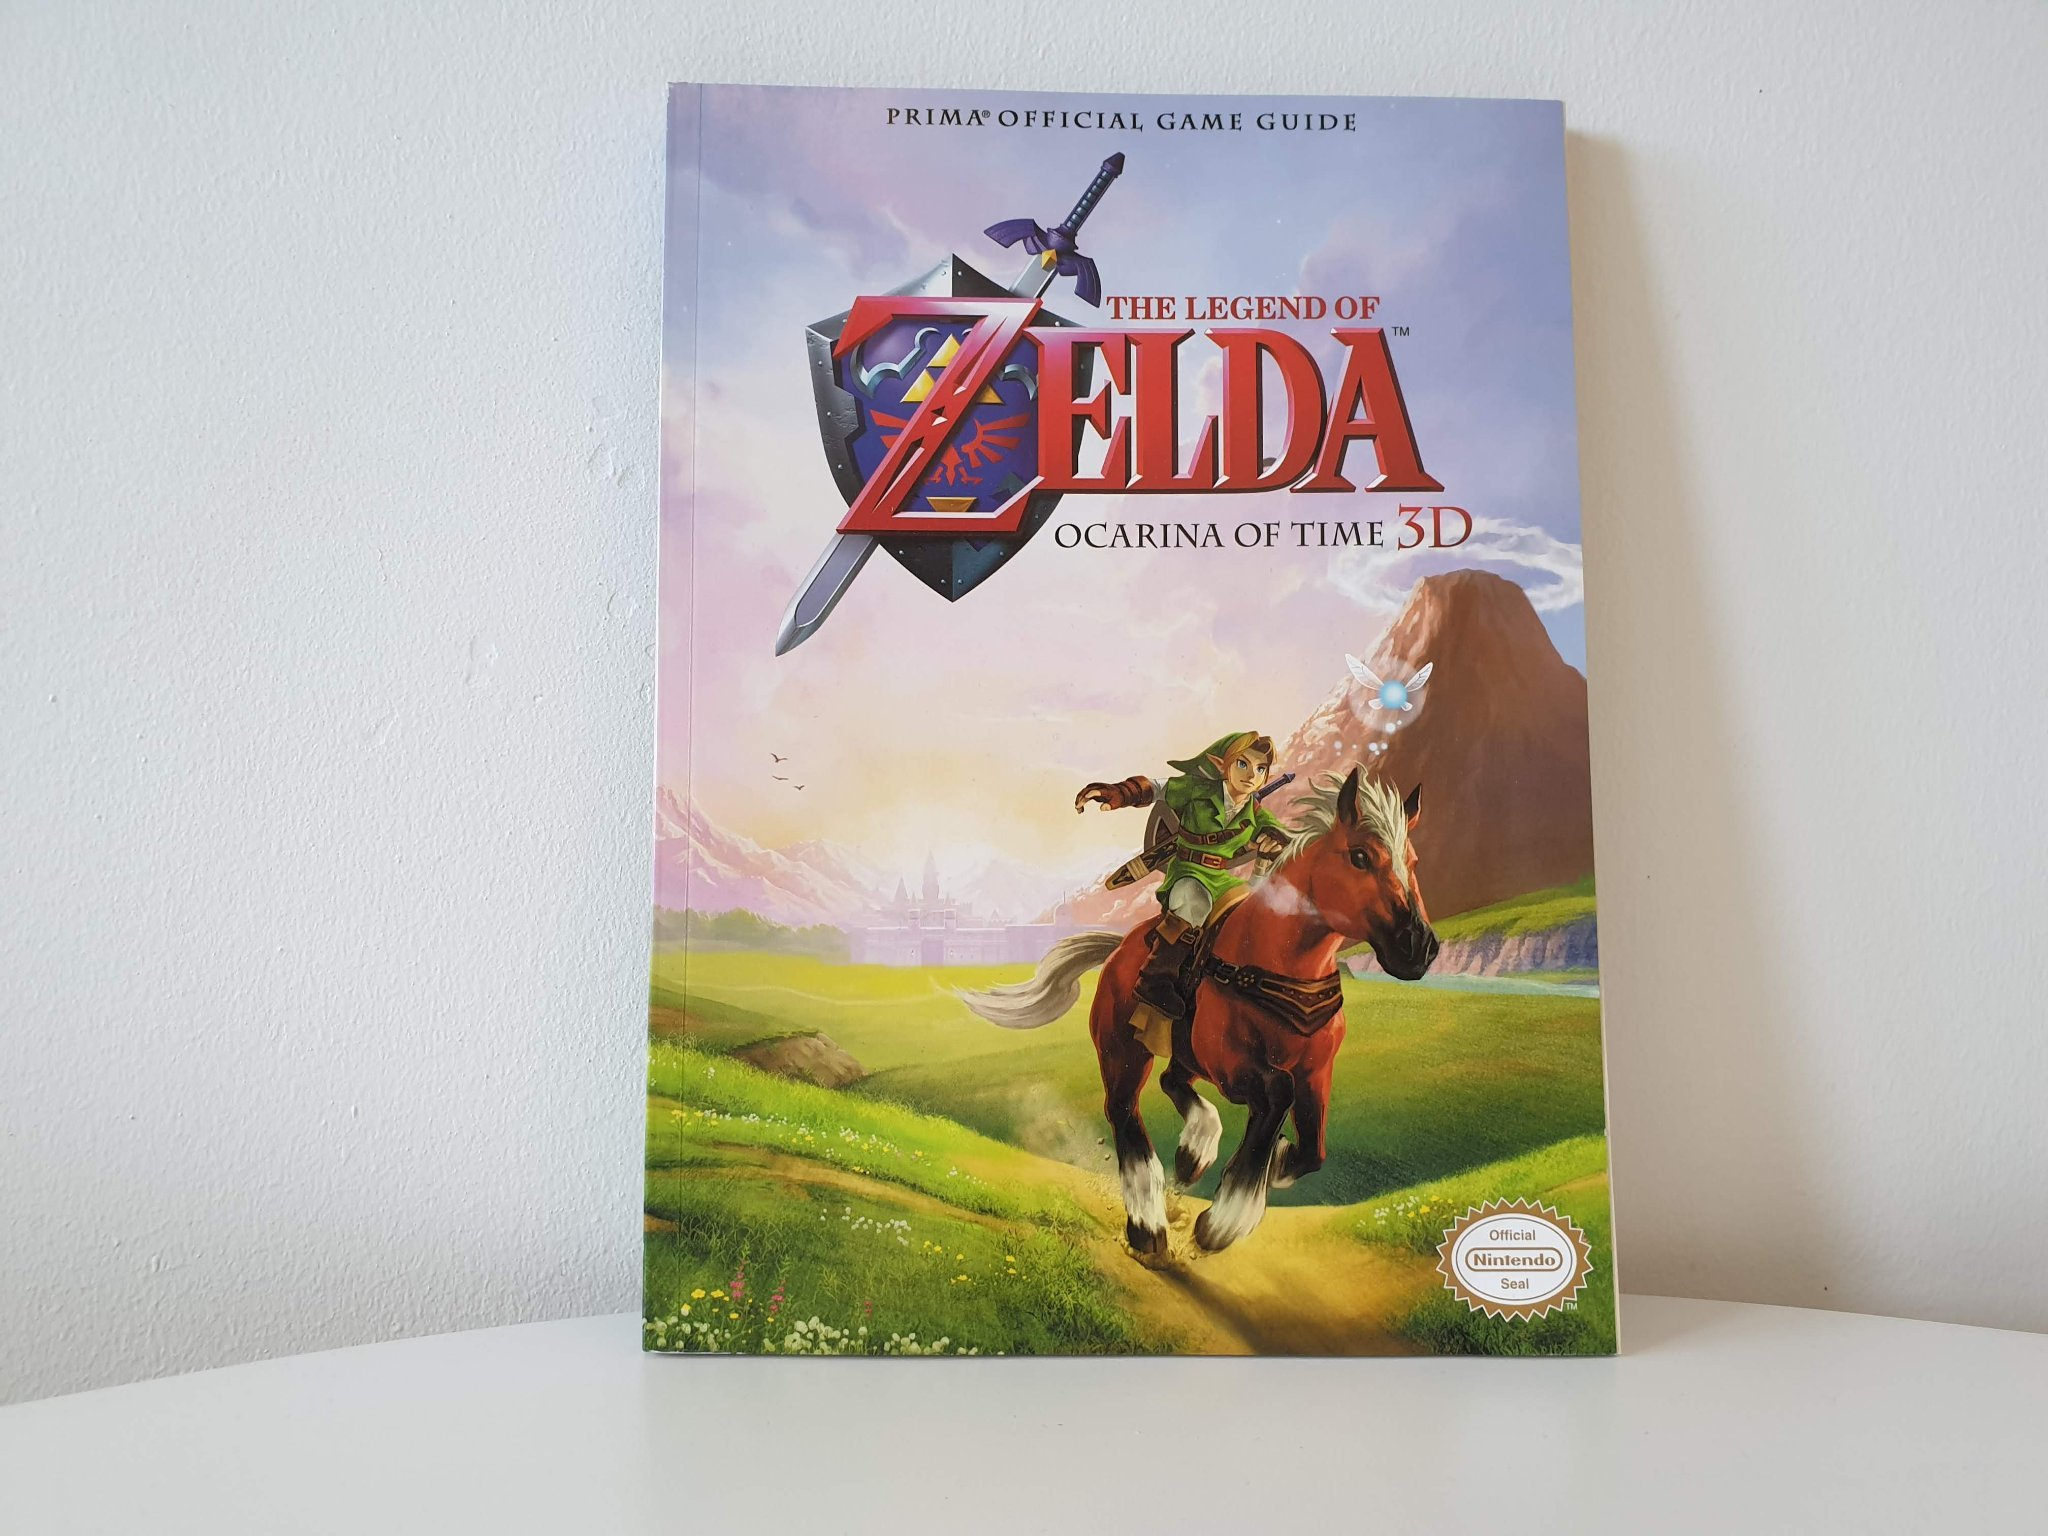 The Legend of Zelda: Ocarina of Time 3D: Prima Official Game Guide + Affisch